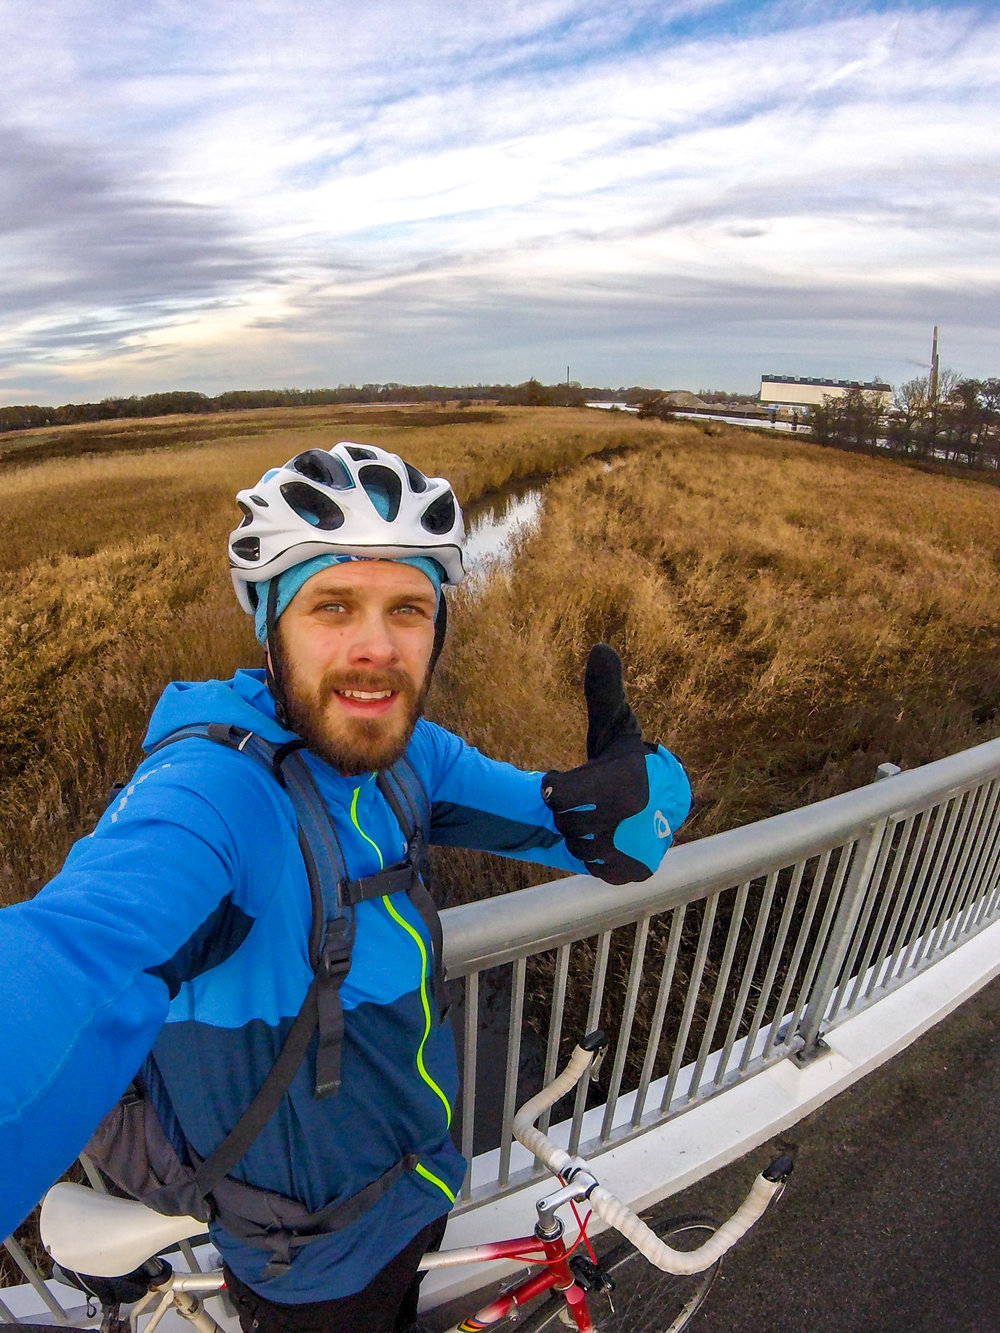 Me at the end of the long bike trip last week. GoPro Hero Sessions 4